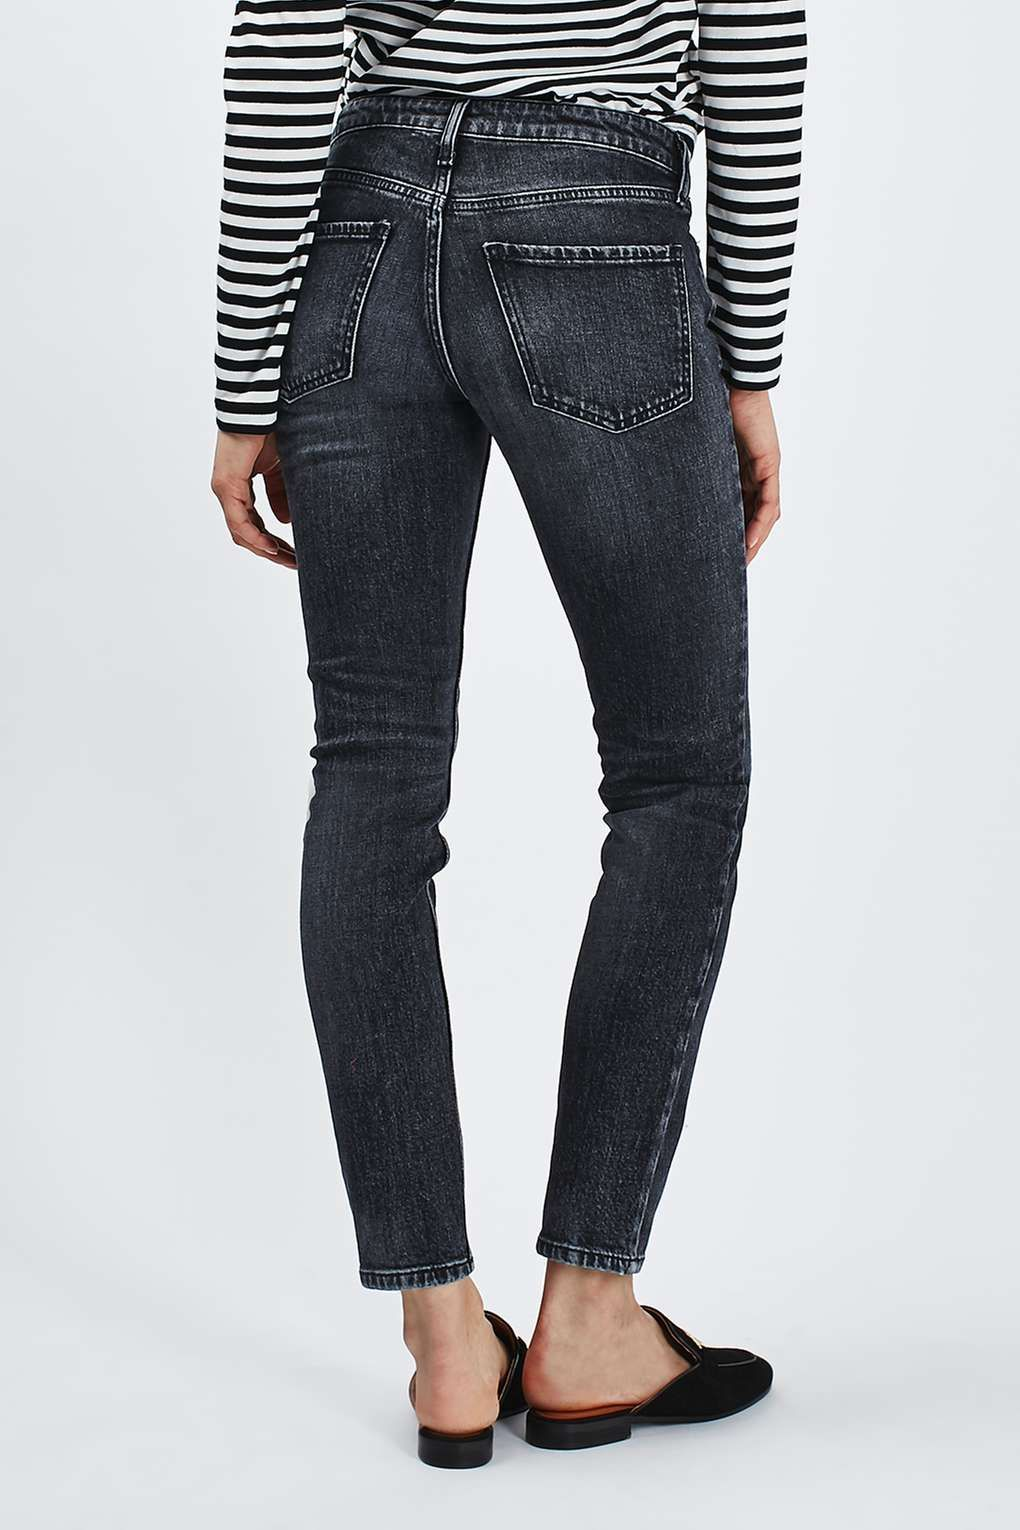 MOTO Washed Black Baxter Jeans   Style   Topshop, Jeans, Denim be8f89dc1b